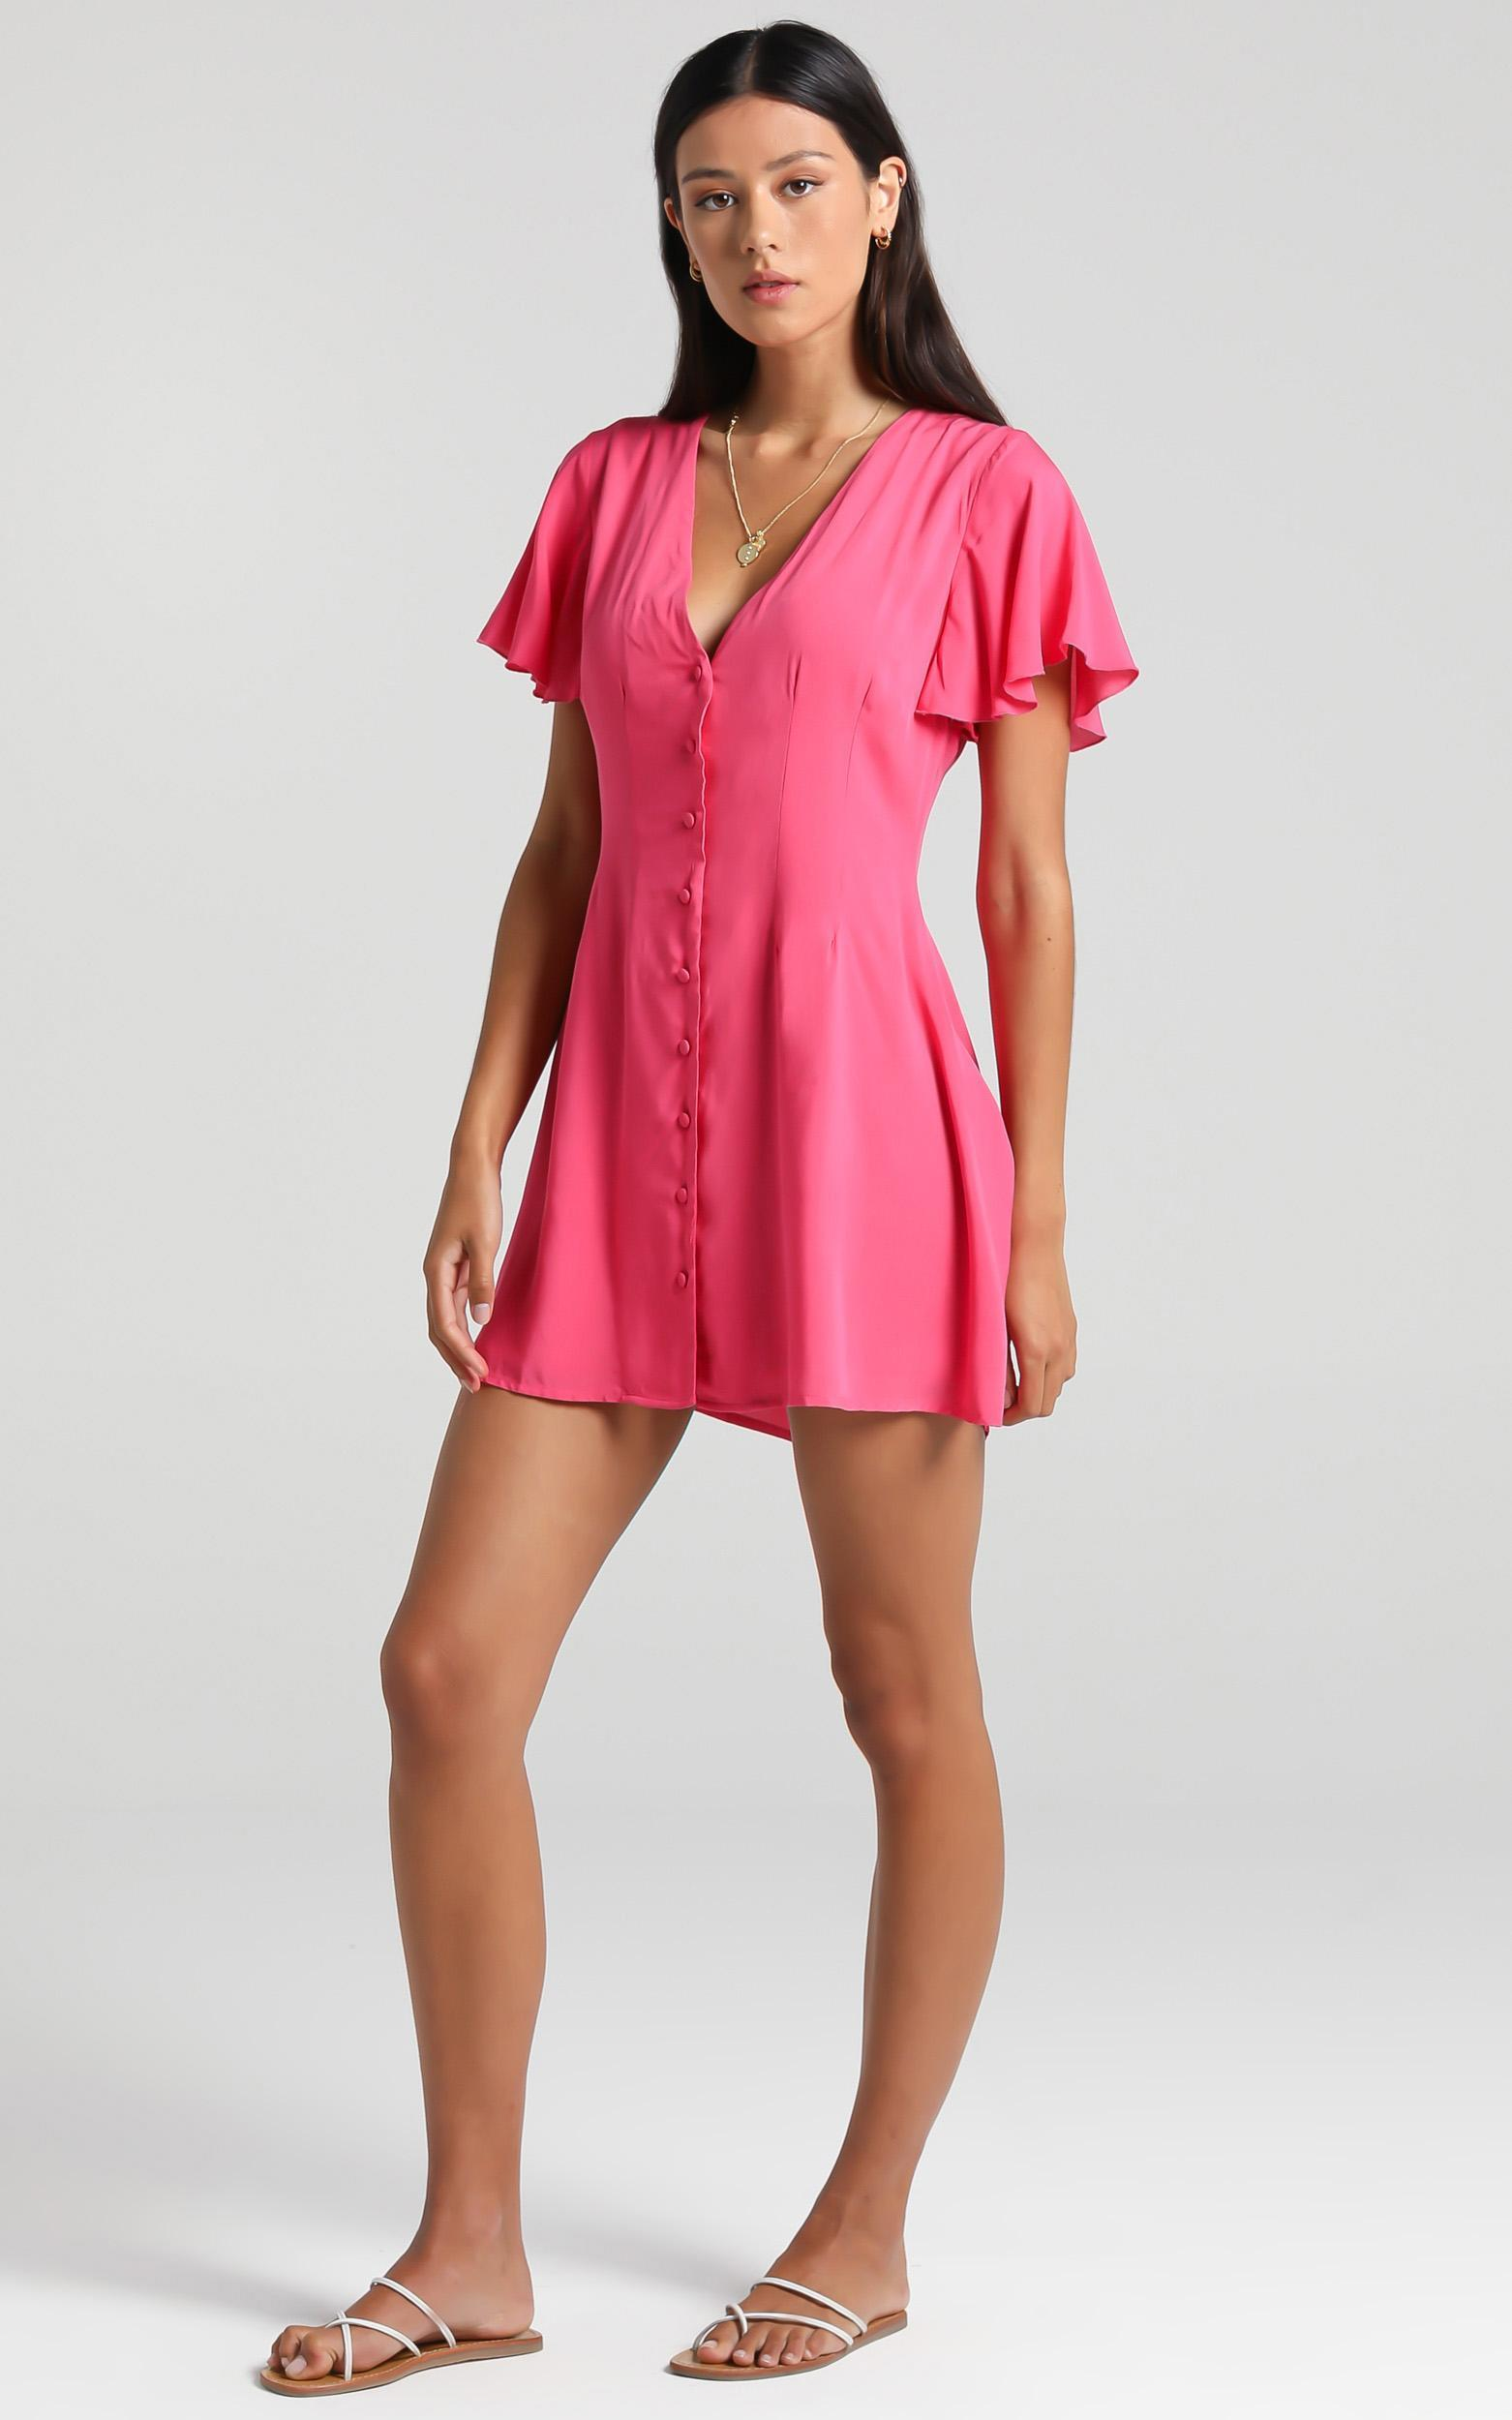 Daiquiri Dress in Pink - 6 (XS), Pink, hi-res image number null